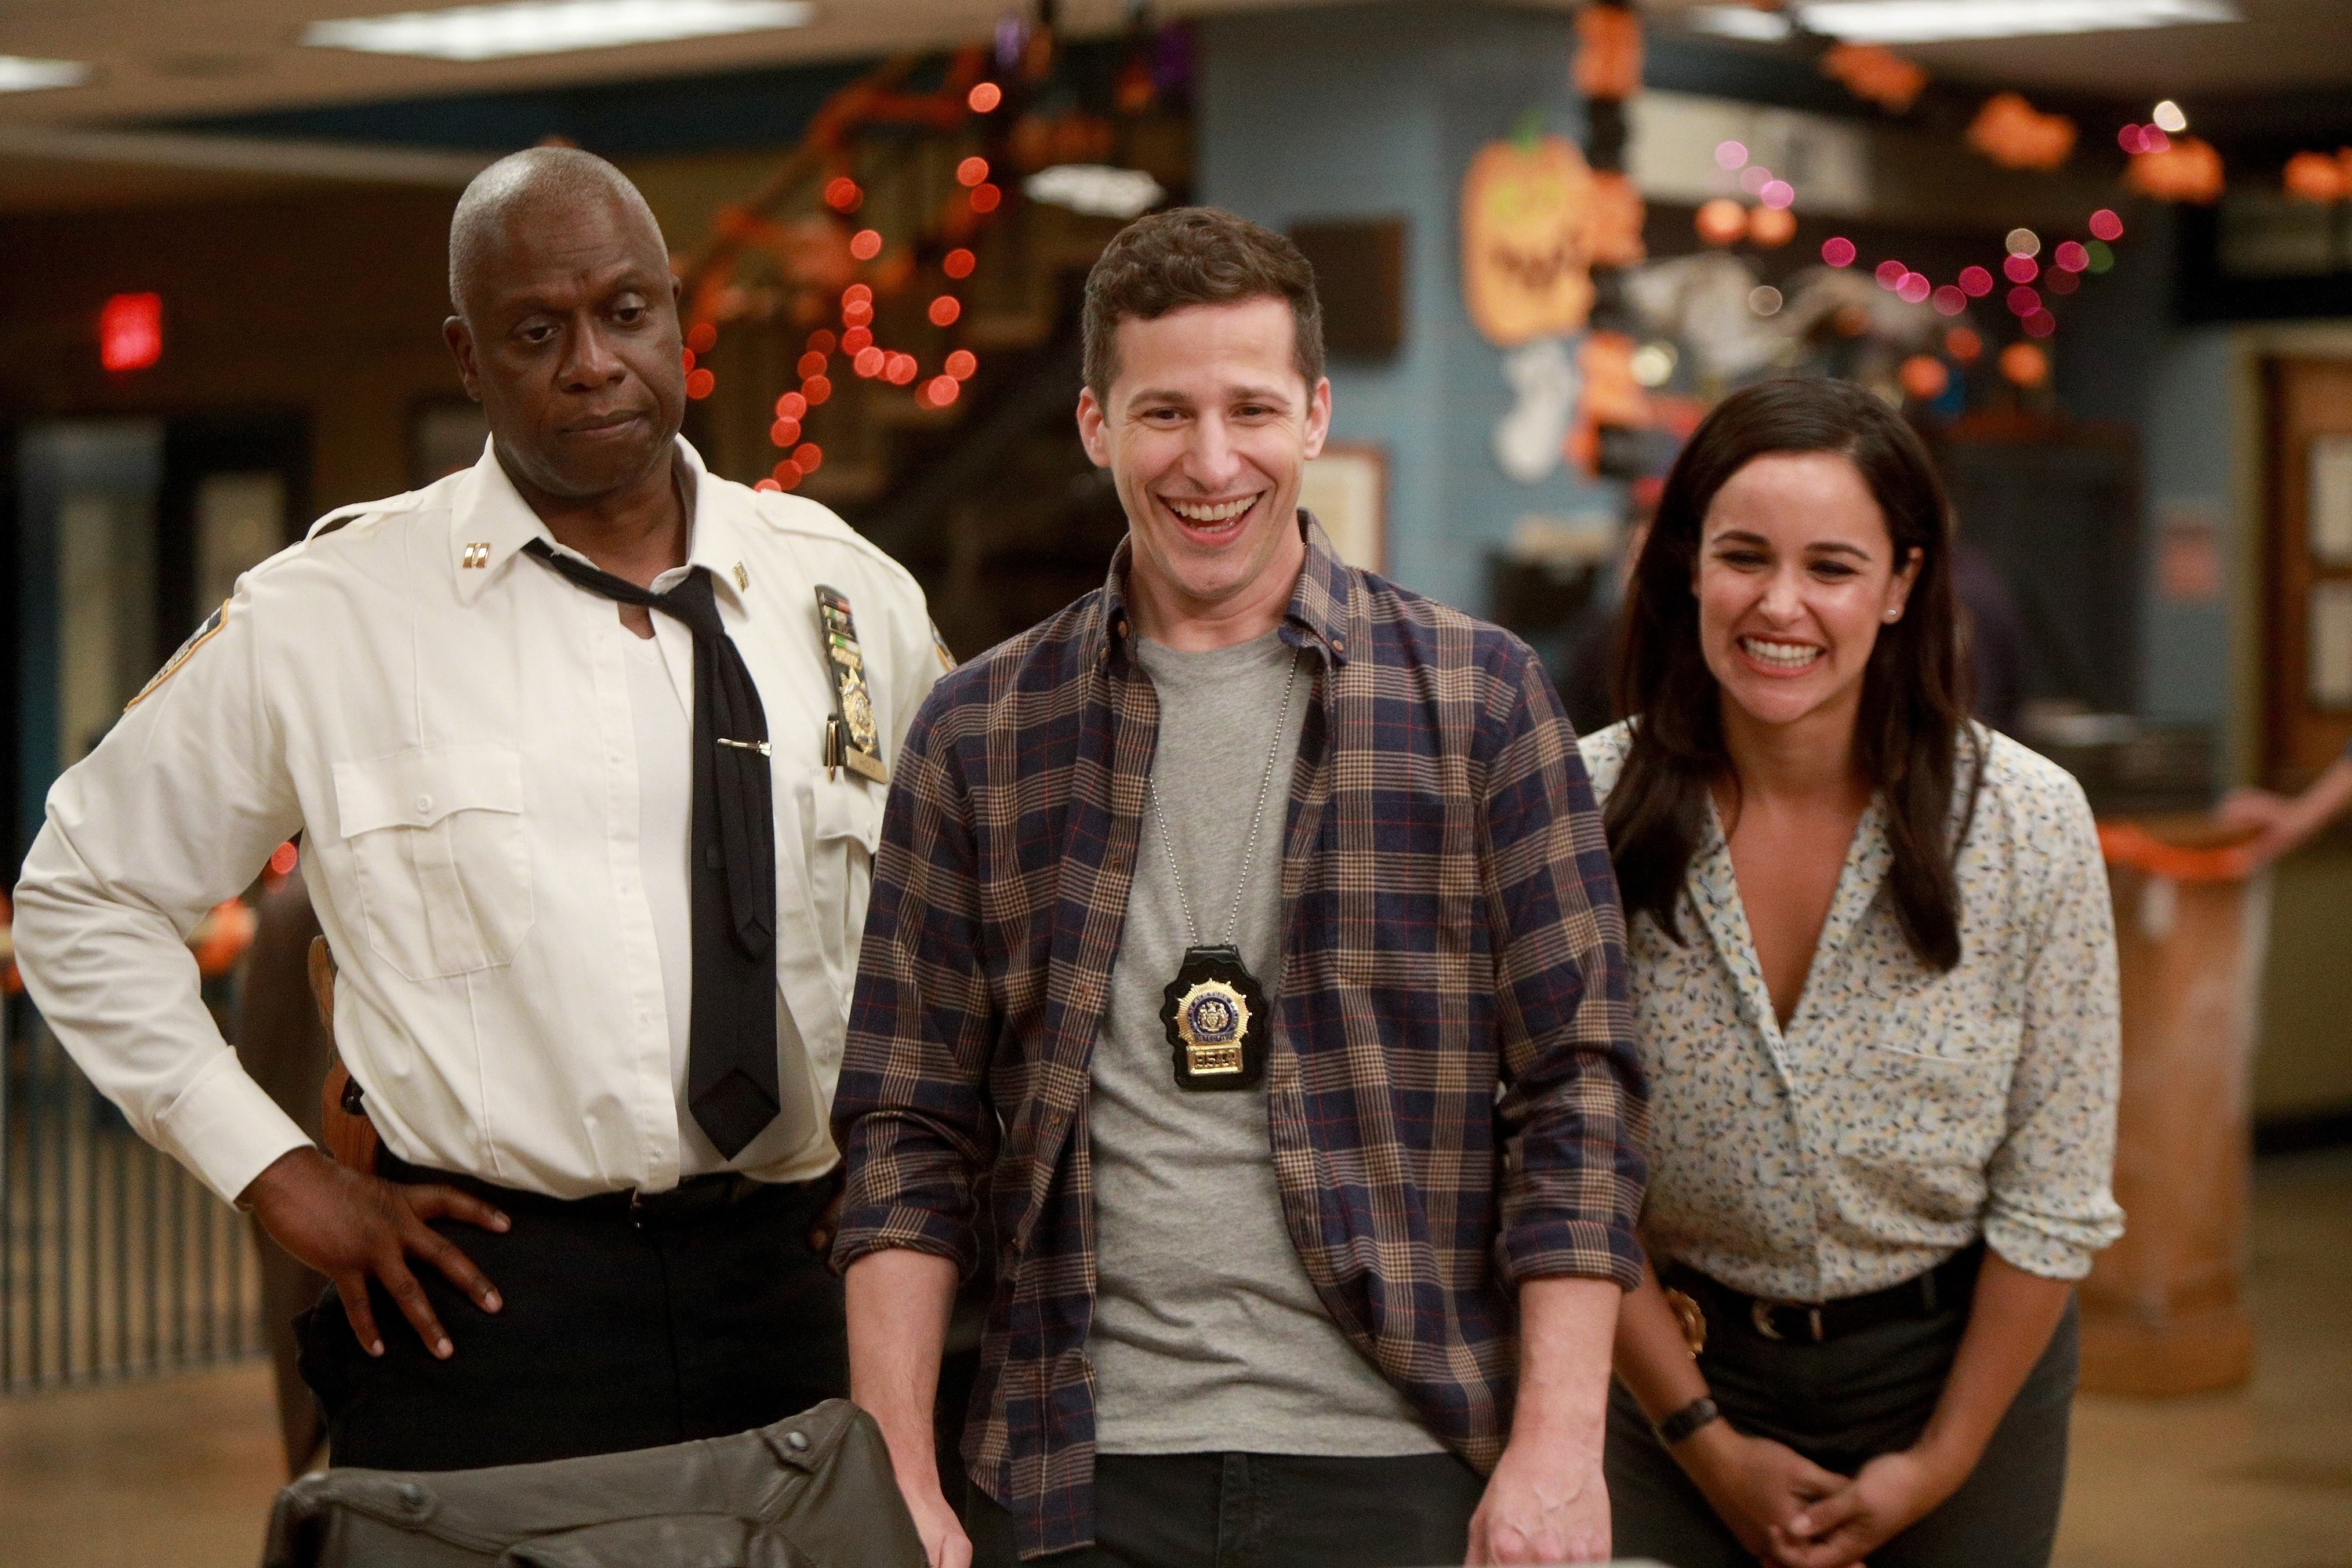 Andre Braugher, Andy Samberg and Melissa Fumero in the HalloVeen episode of BROOKLYN NINE-NINE airing Tuesday, Oct. 17